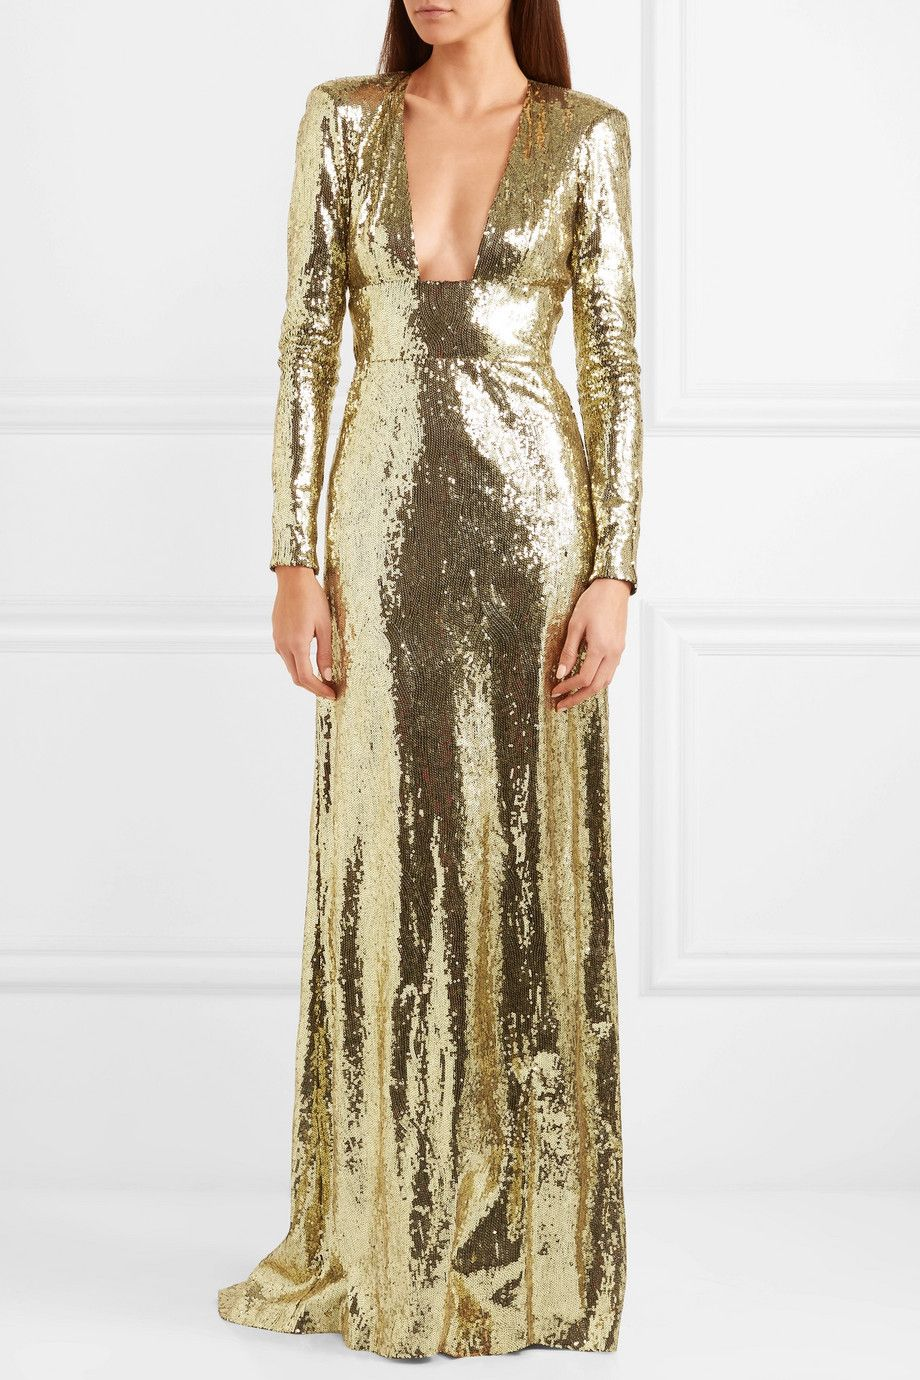 72d03a57e0441 Dundas - Open-back sequined tulle gown in 2019 | High Fashion ...